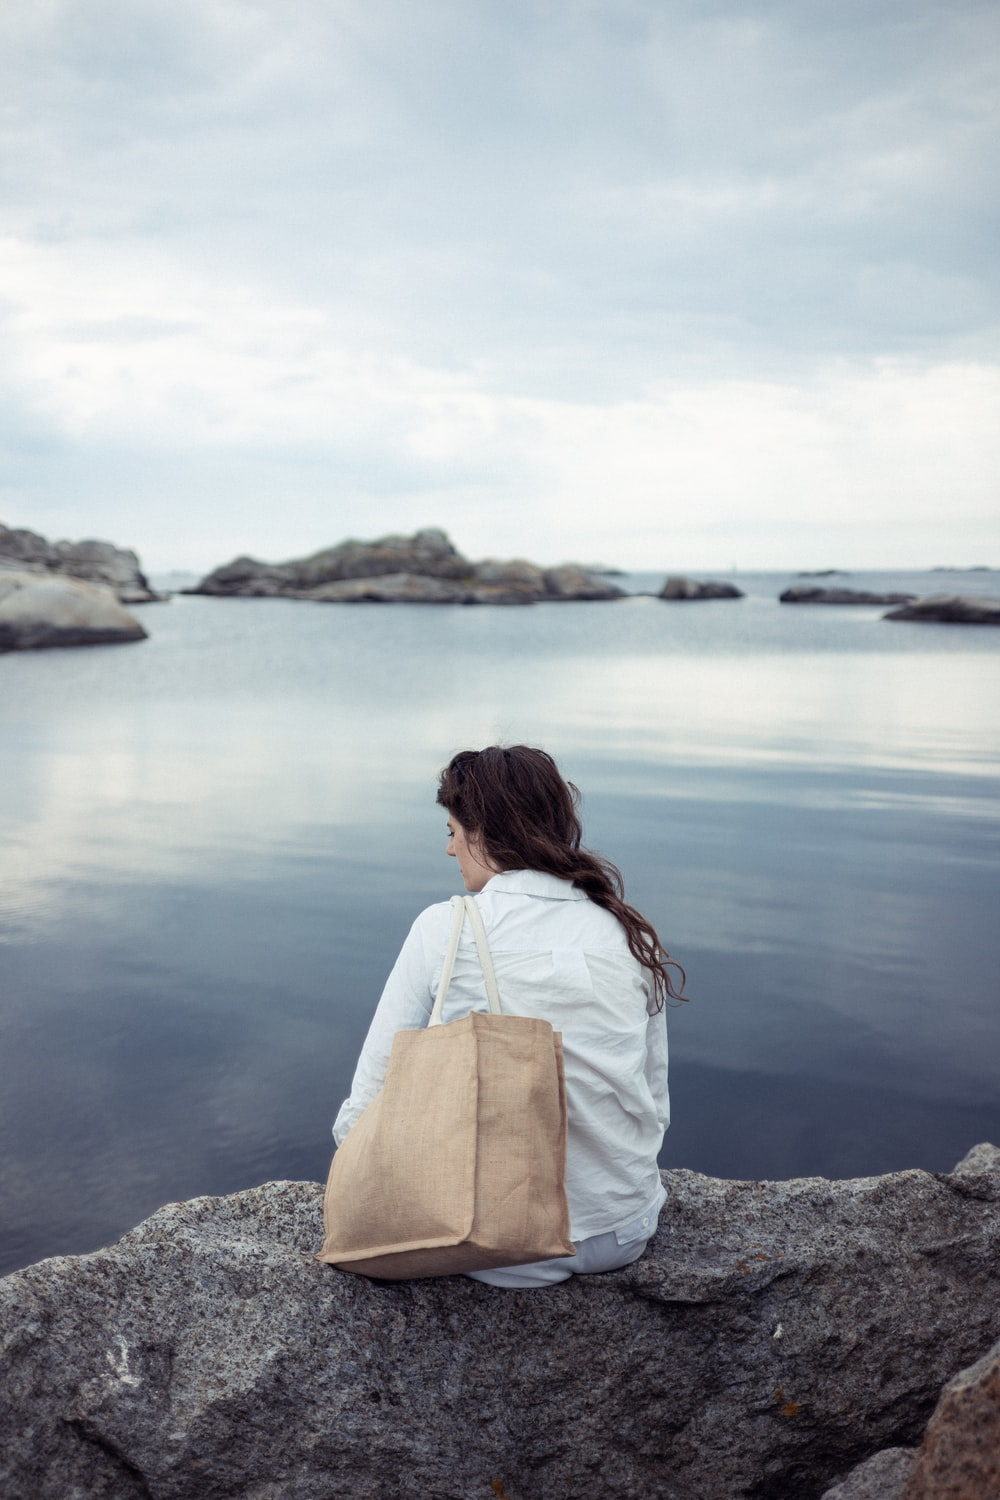 woman in white shirt sitting on rock near body of water during daytime